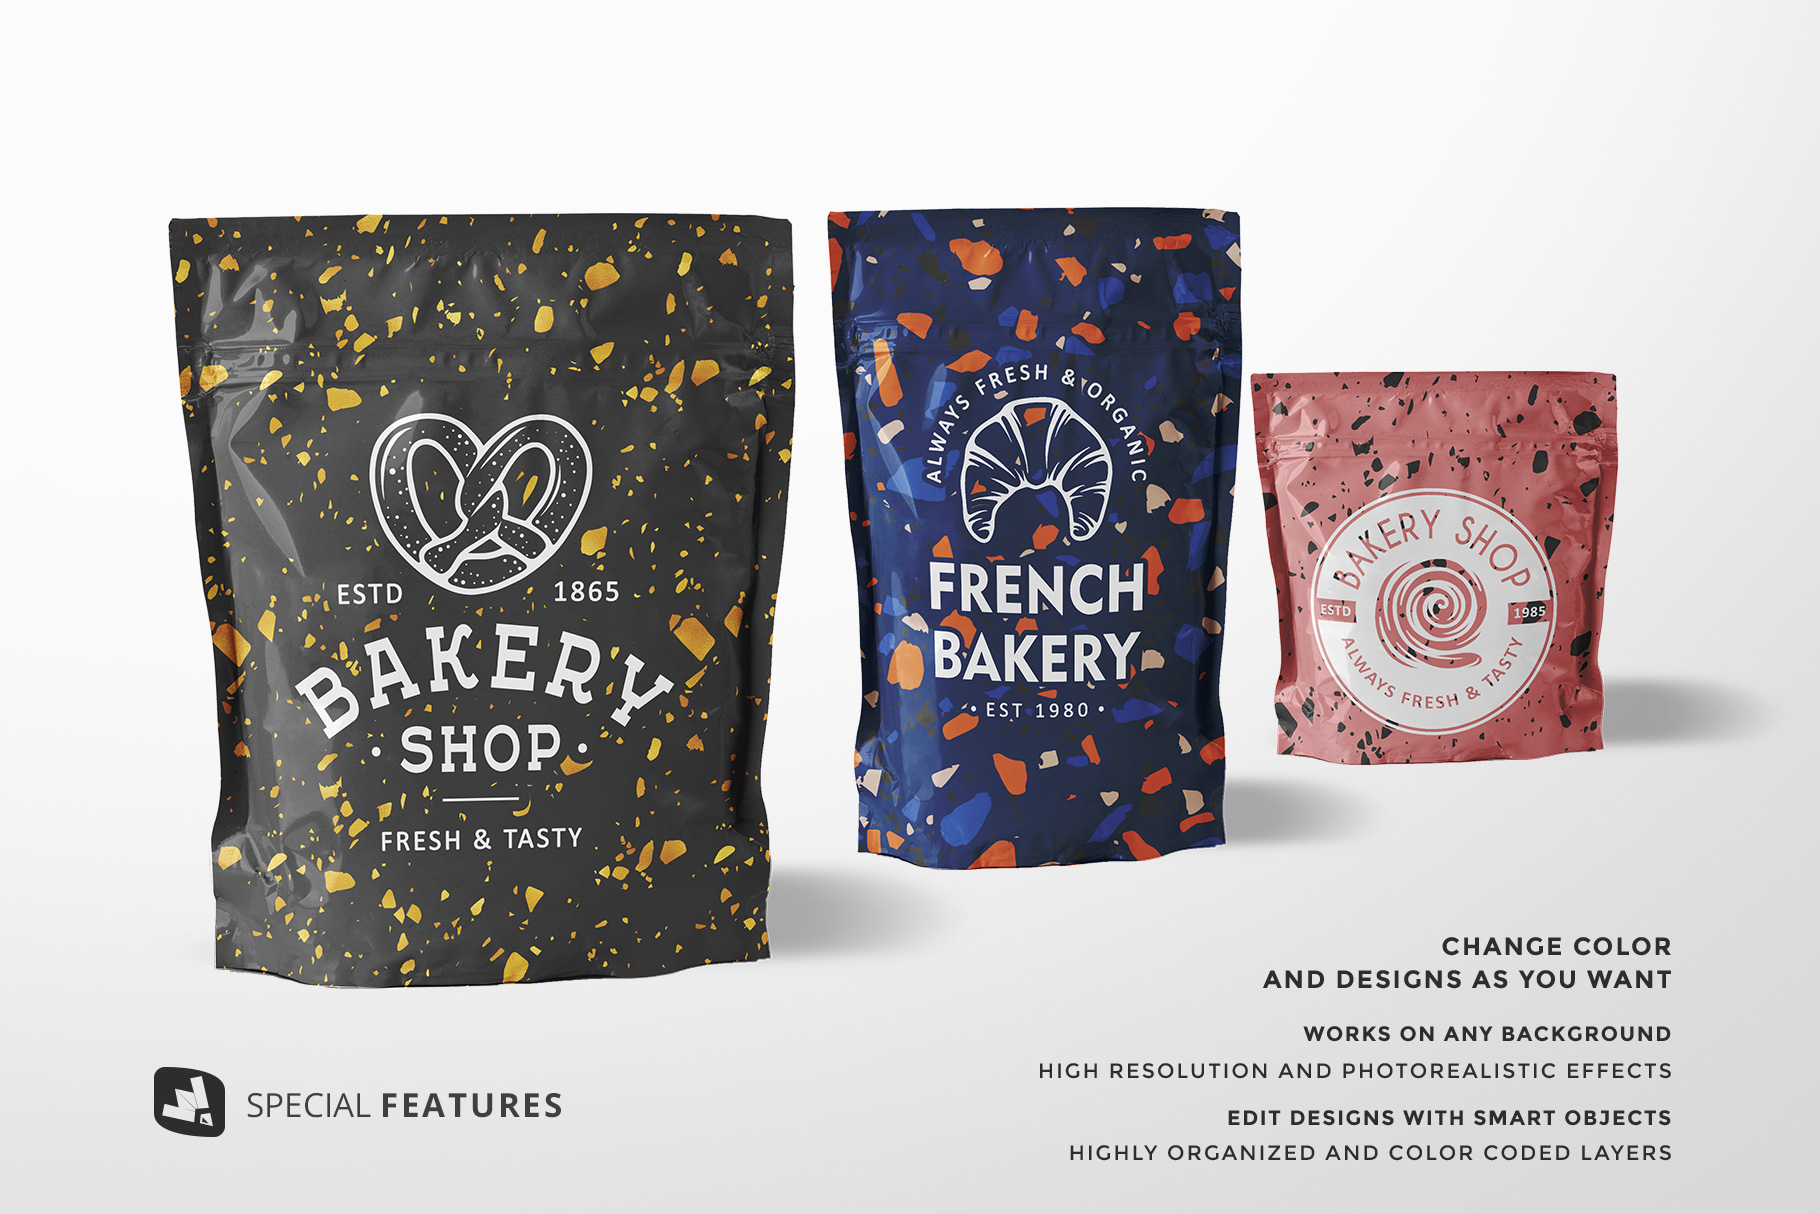 special features of the flexible food pouch packaging mockup